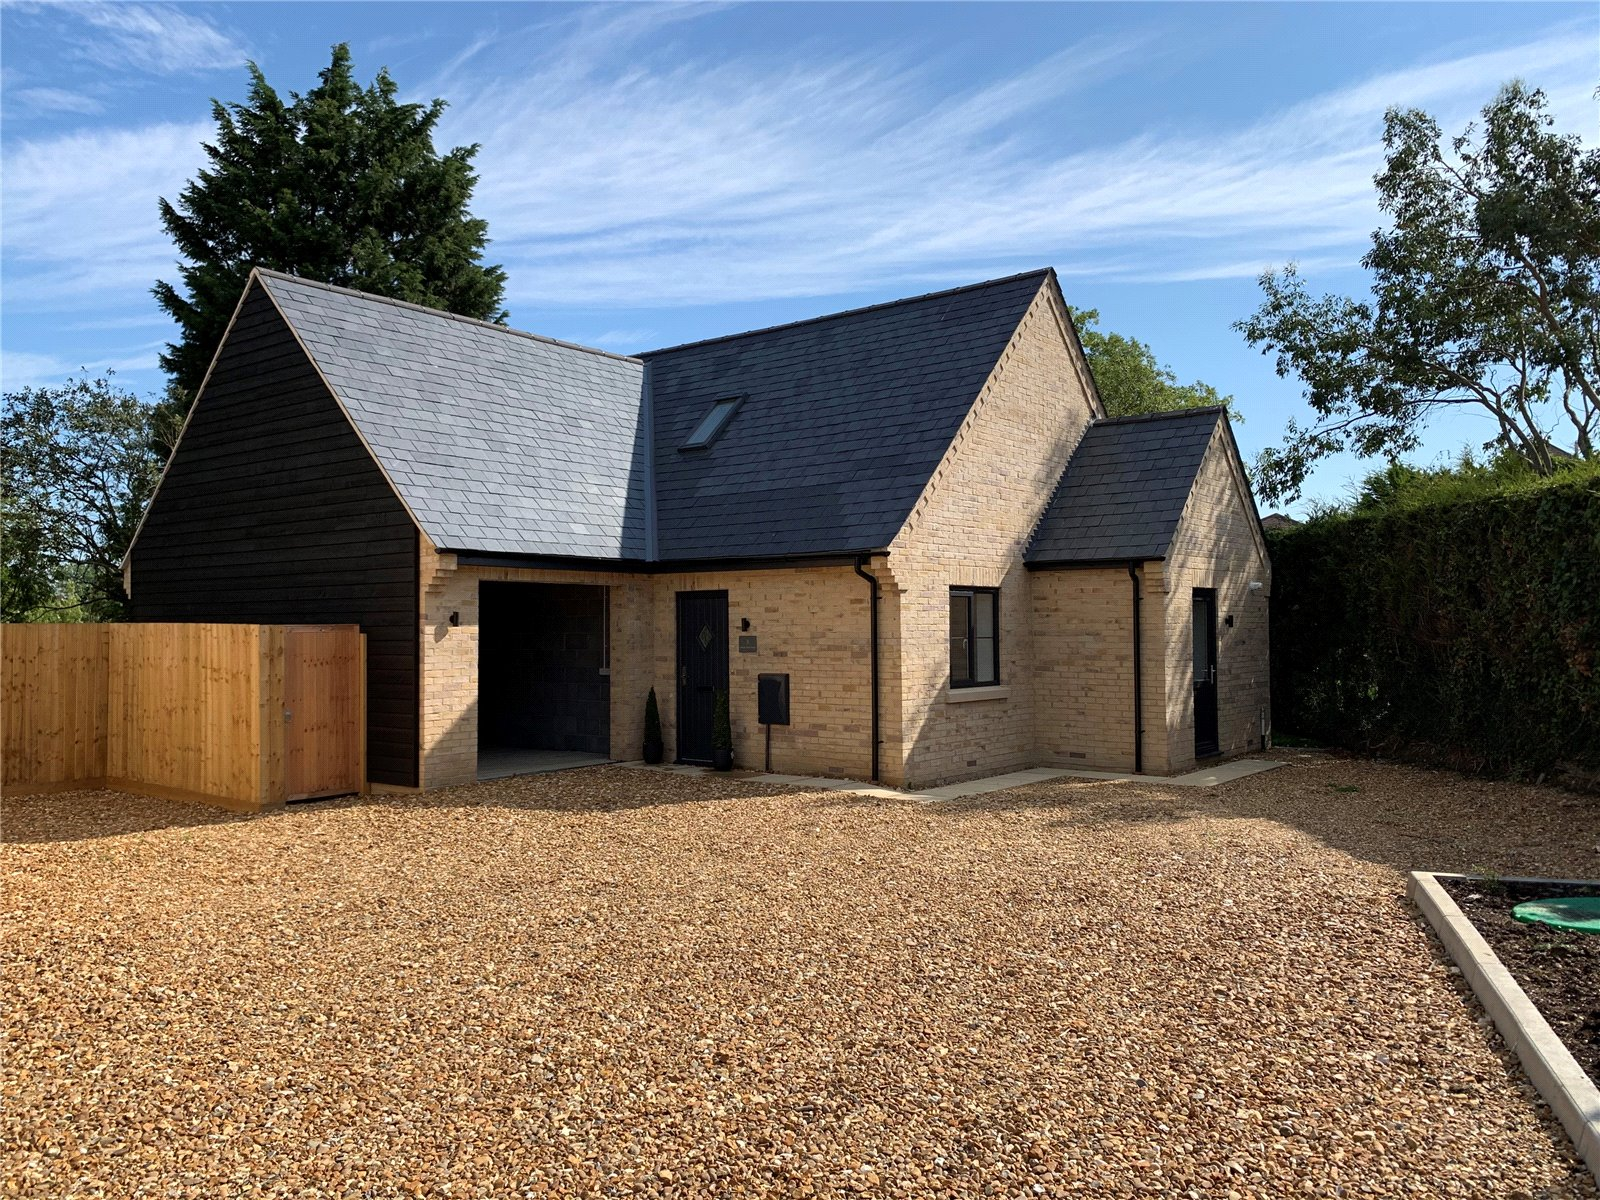 4 bed house for sale in Pidley, PE28 3DD - Property Image 1